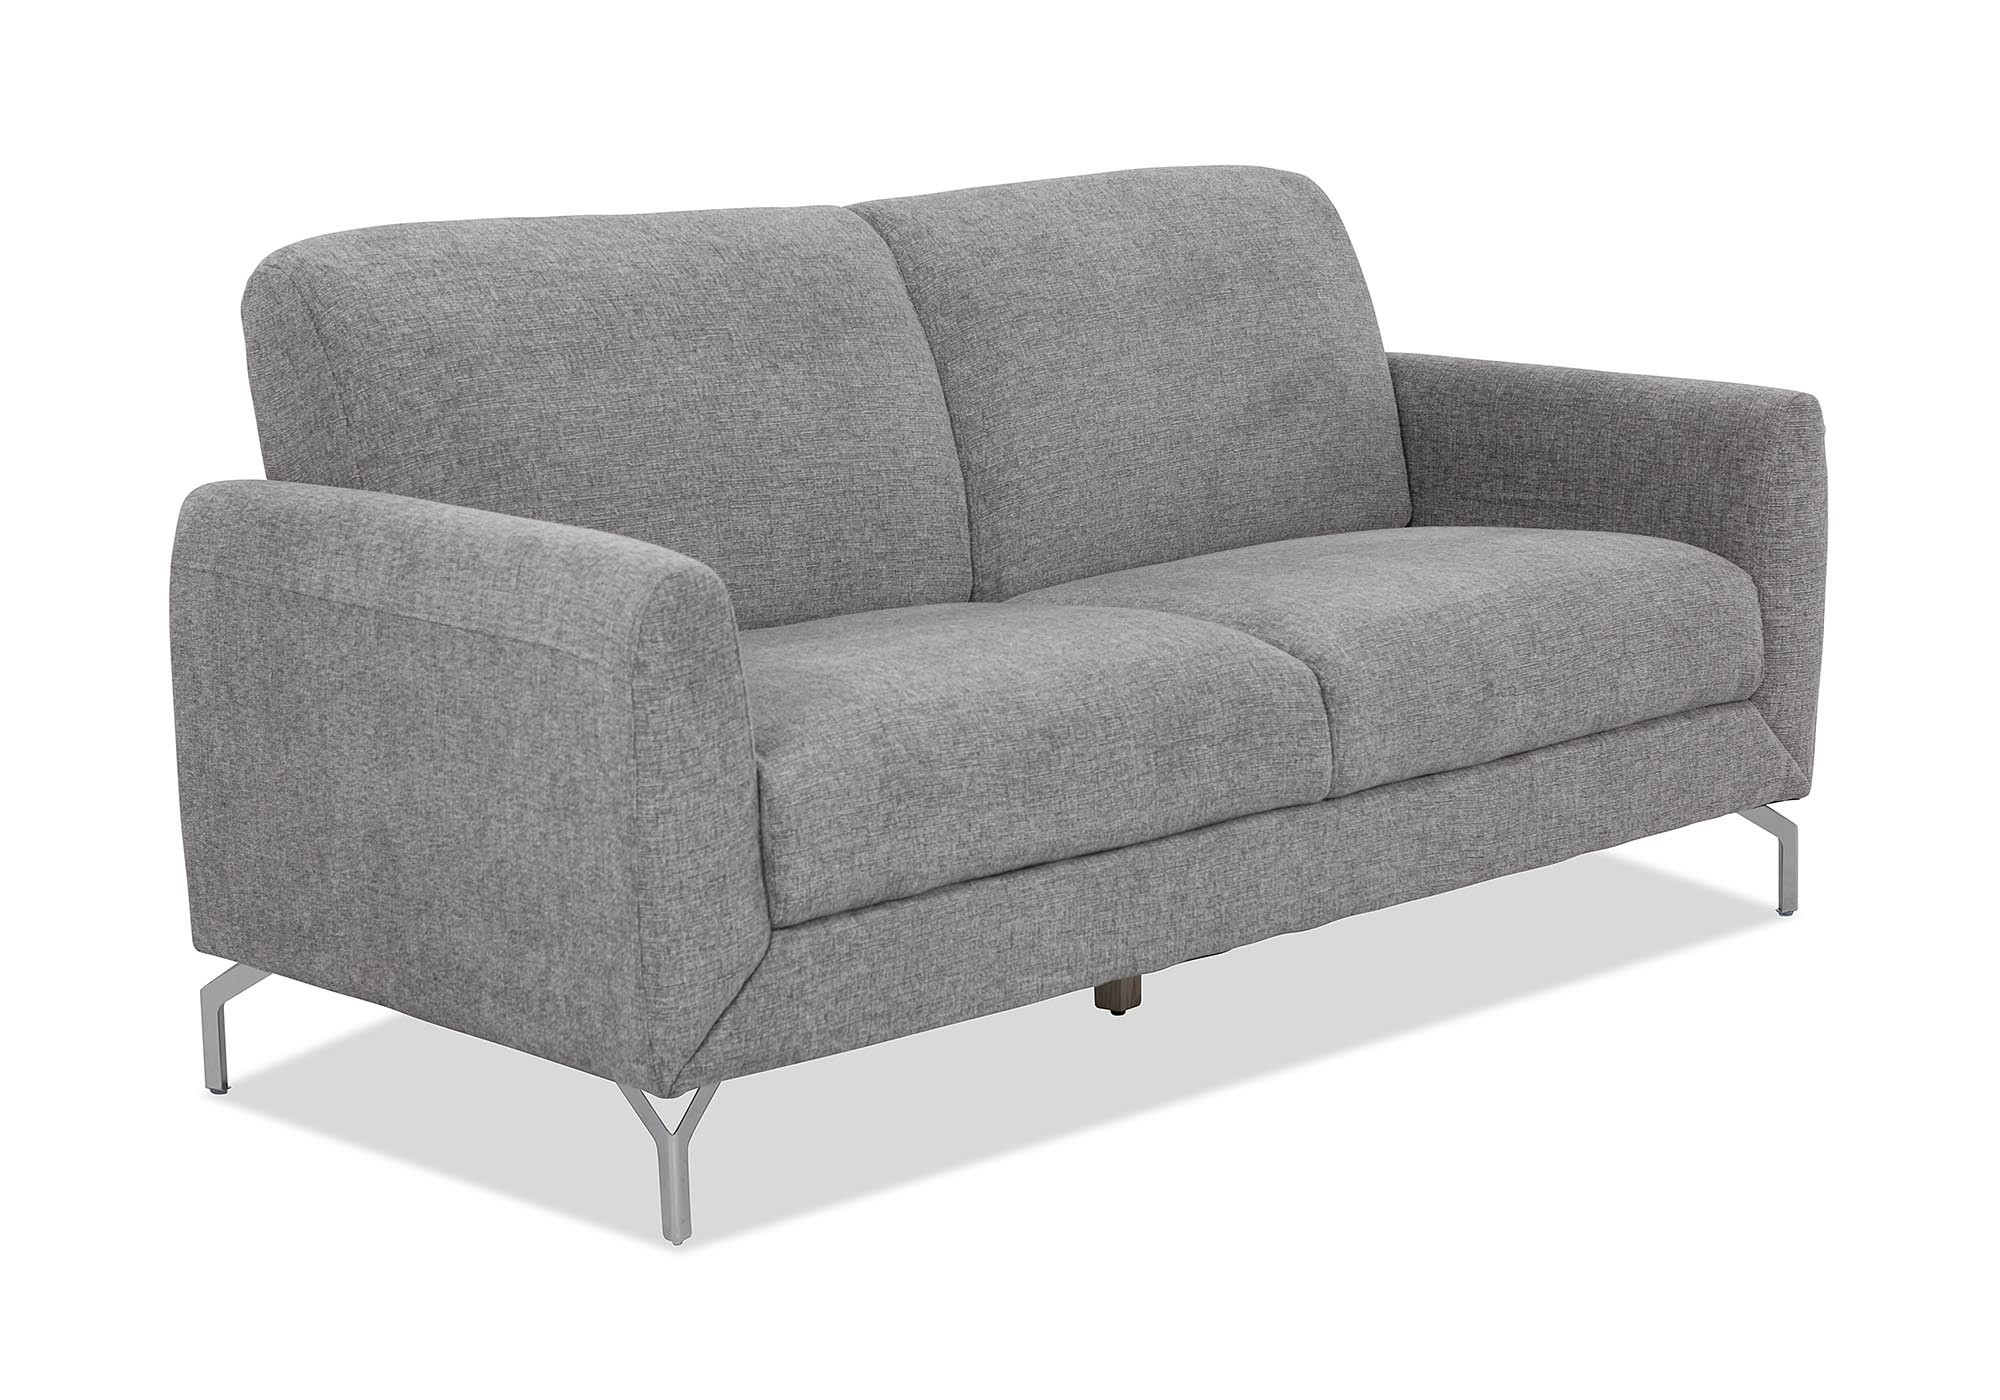 As Is Clearance Lauinus 3 Seater Sofa Grey Rr37992